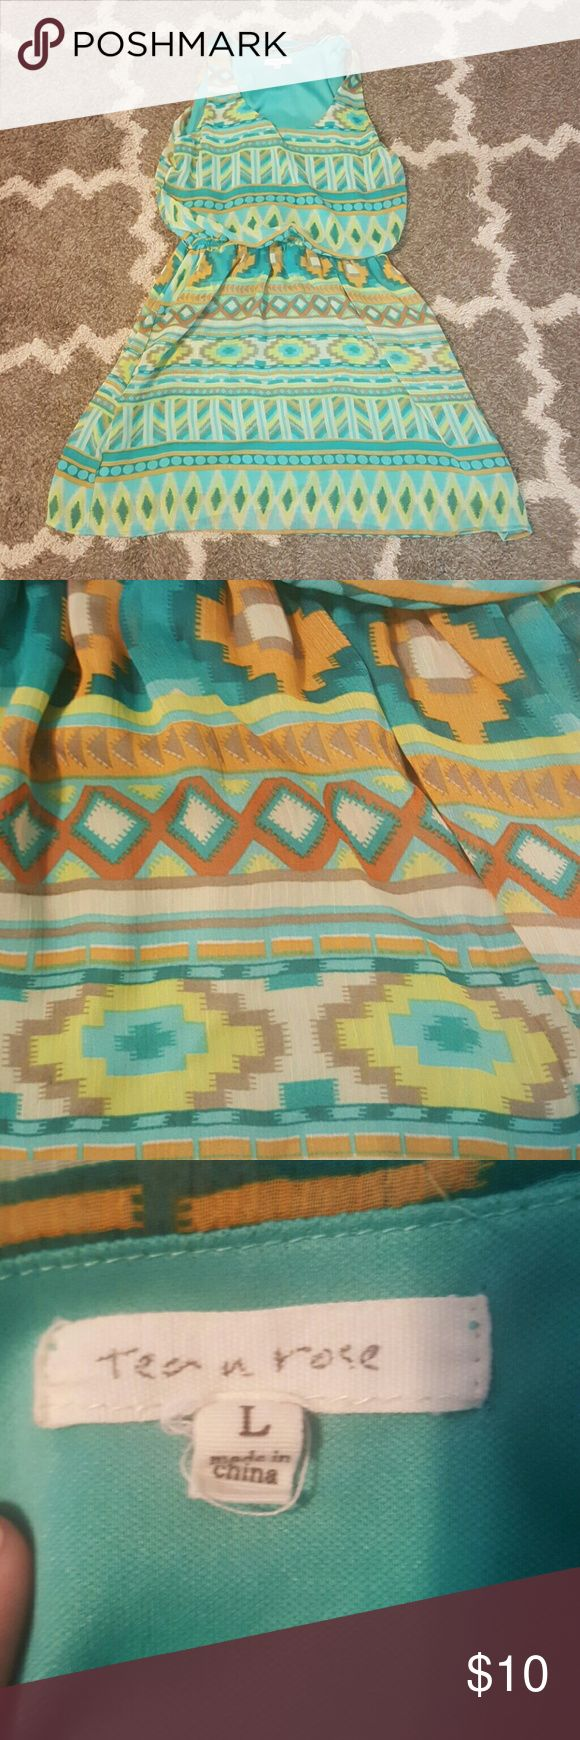 Aztec tea and rose dress Fits more like a Meduim or a smaller large... Used but still in great shape! tea n rose  Dresses Mini